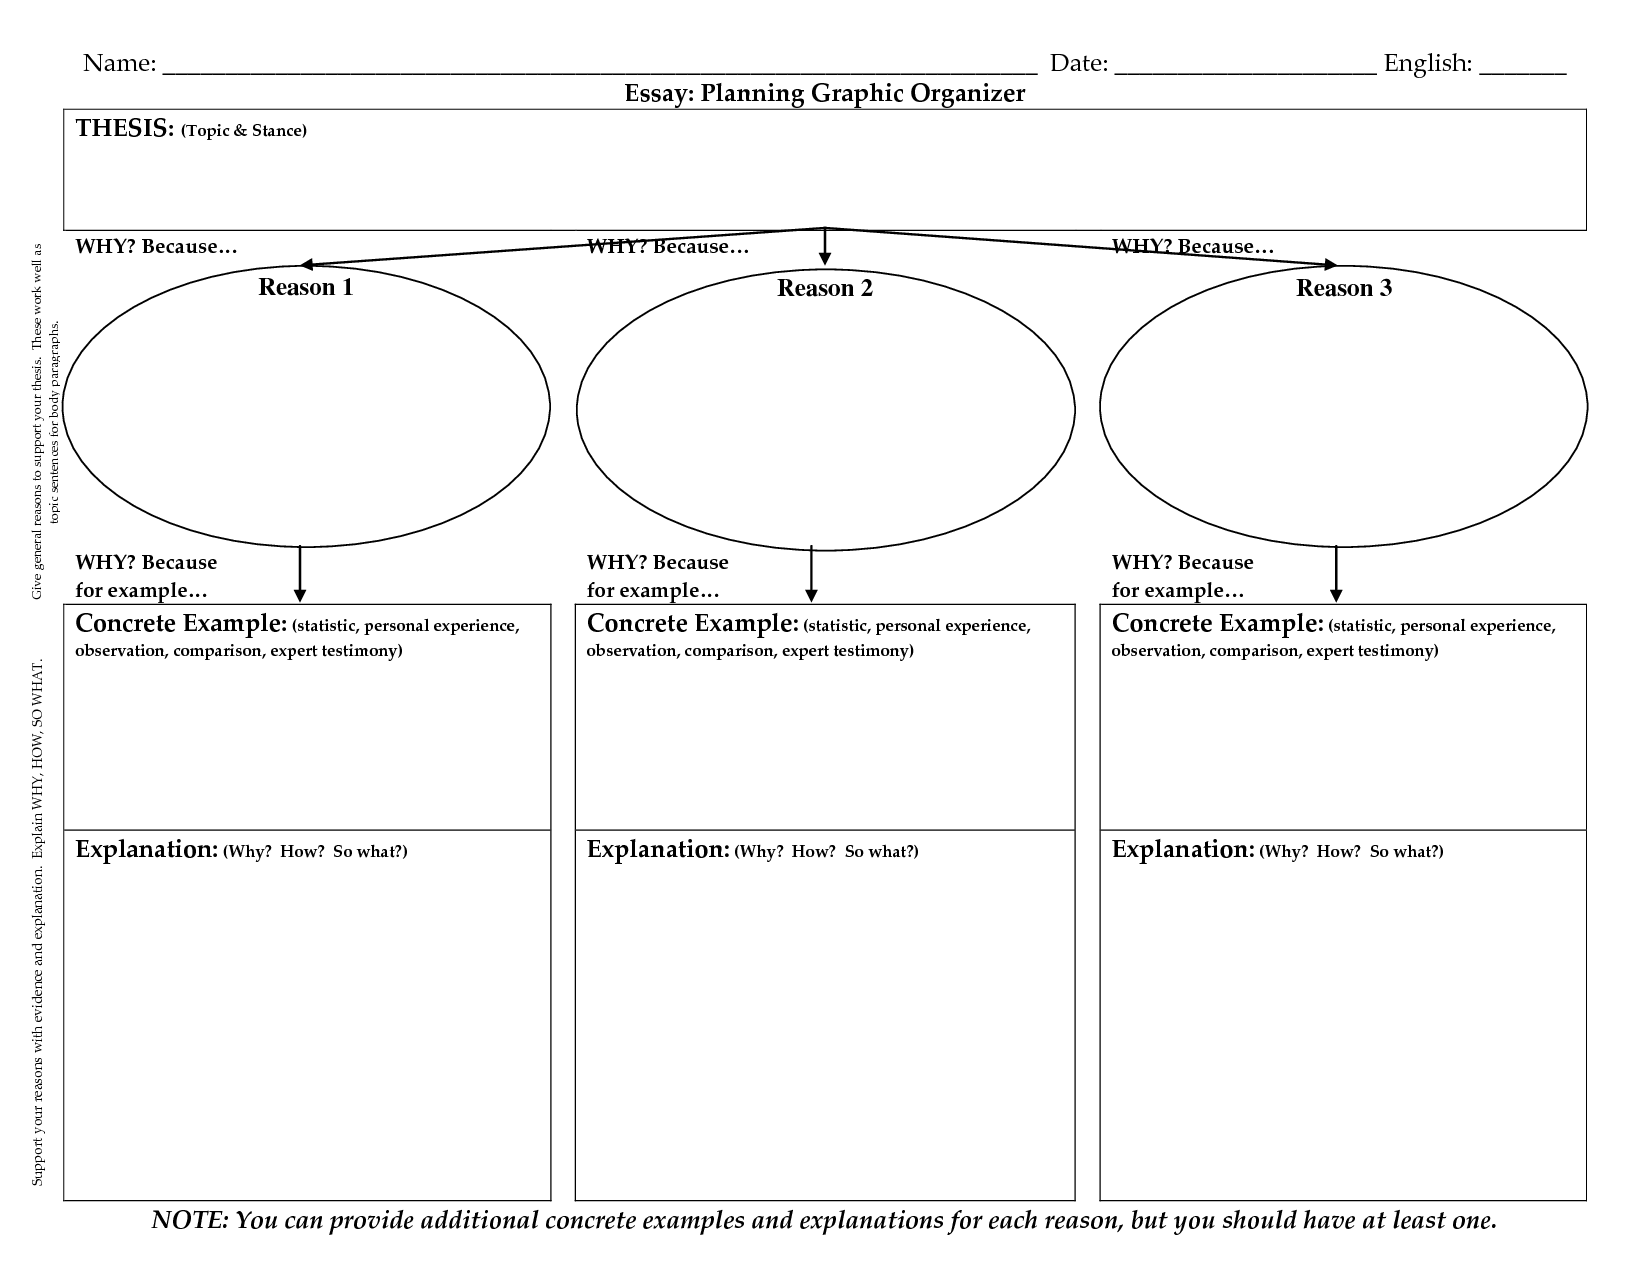 EssayWriting Graphic Organizer  Education    Graphic